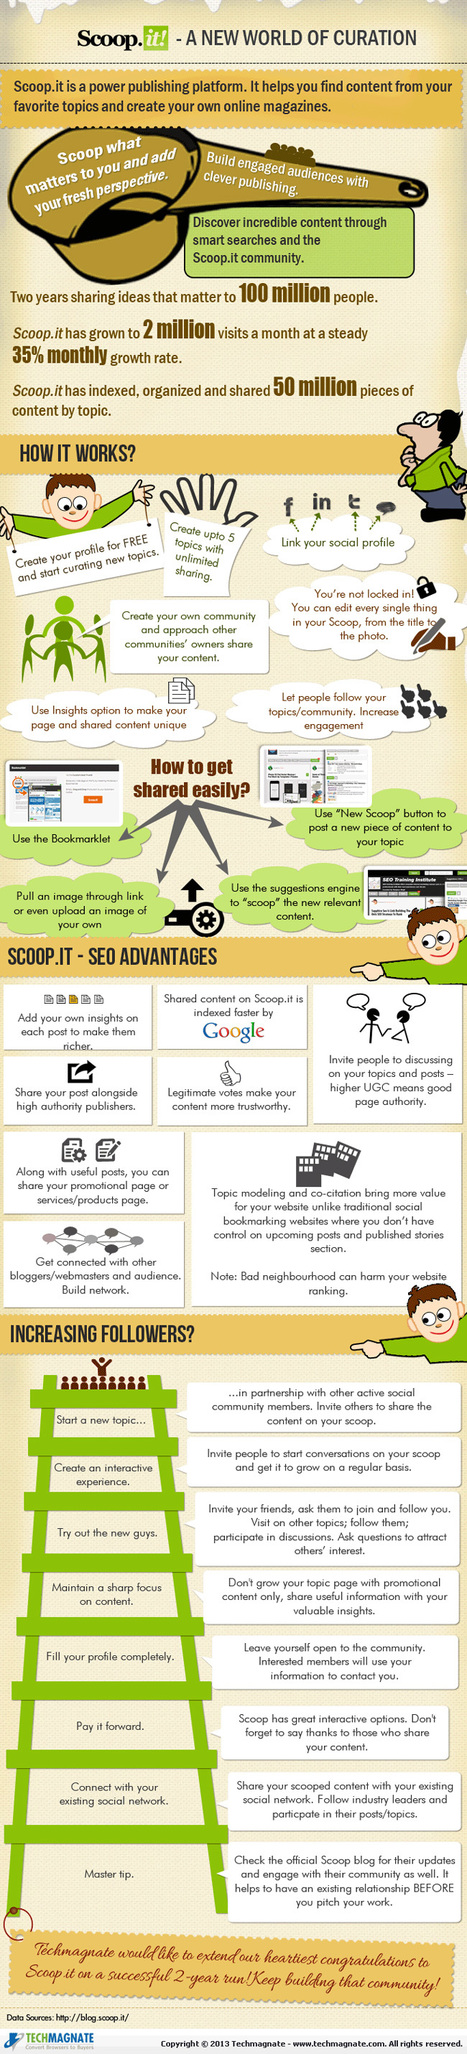 Scoop.It for SEO – A New World of Curation [Infographic] | Web 2.0 infos | Scoop.it